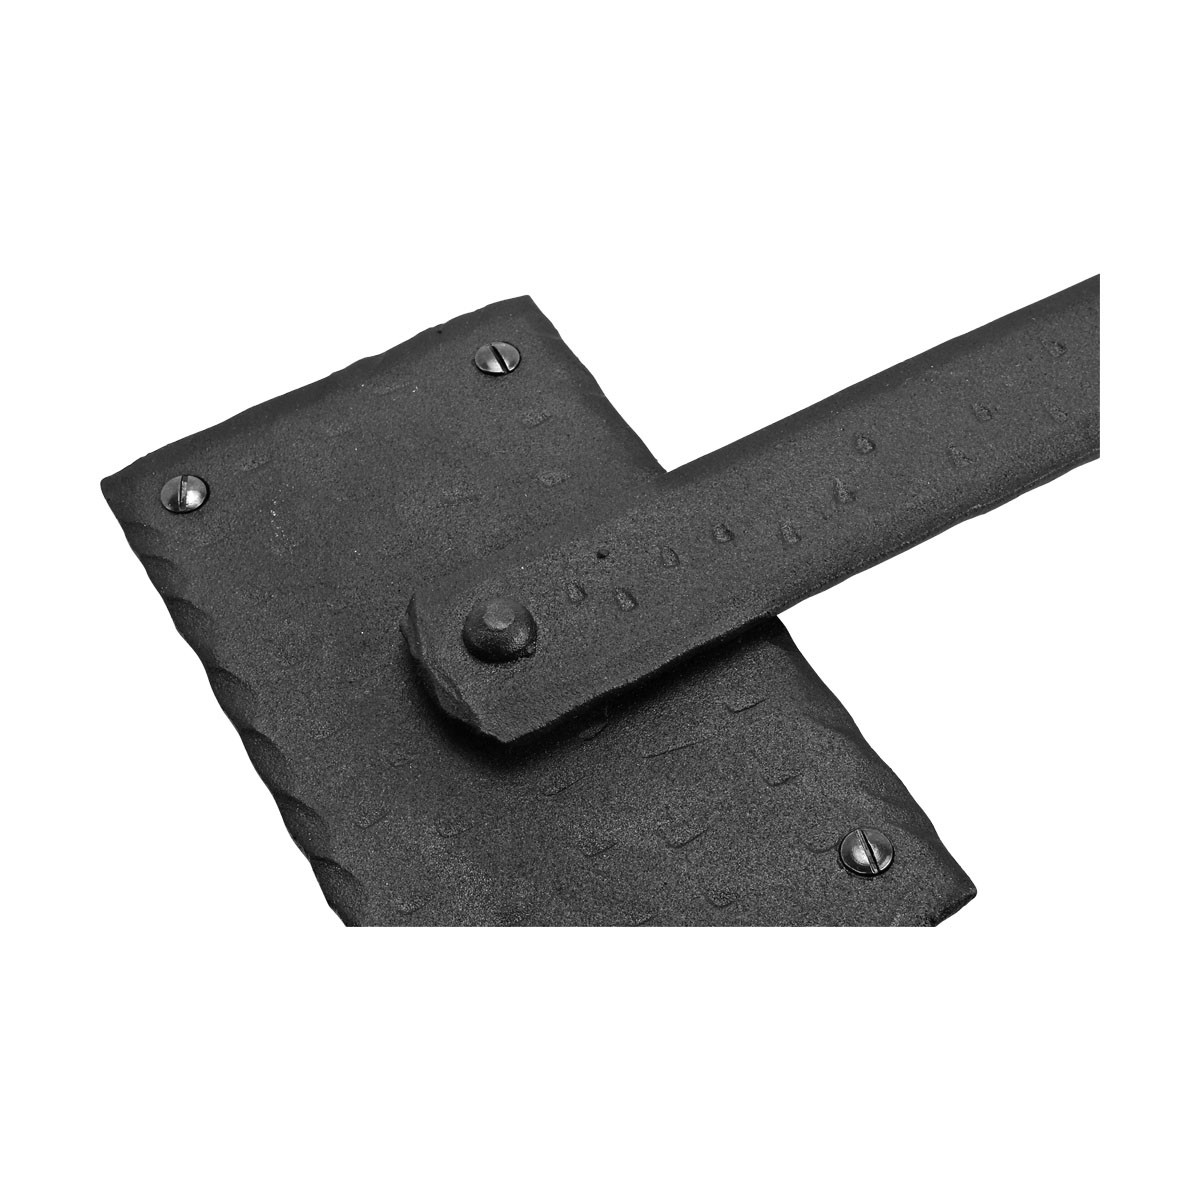 2 Lift Gate Lock Black Wrought Hand Forged Iron Gate Latch 12 Inch Gate Latches Gate Latch Wrought Iron Gate Latches